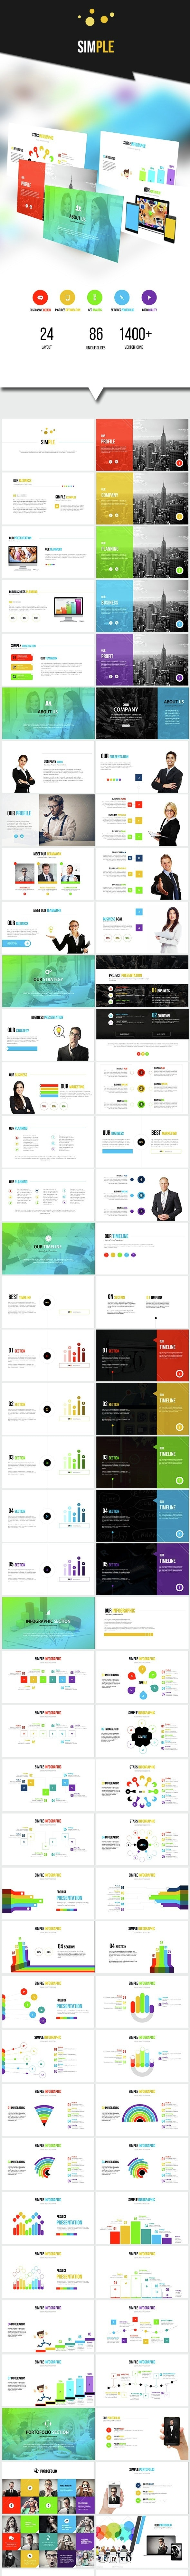 SIMPLE - Powerpoint Business Presentation - PowerPoint Templates Presentation Templates